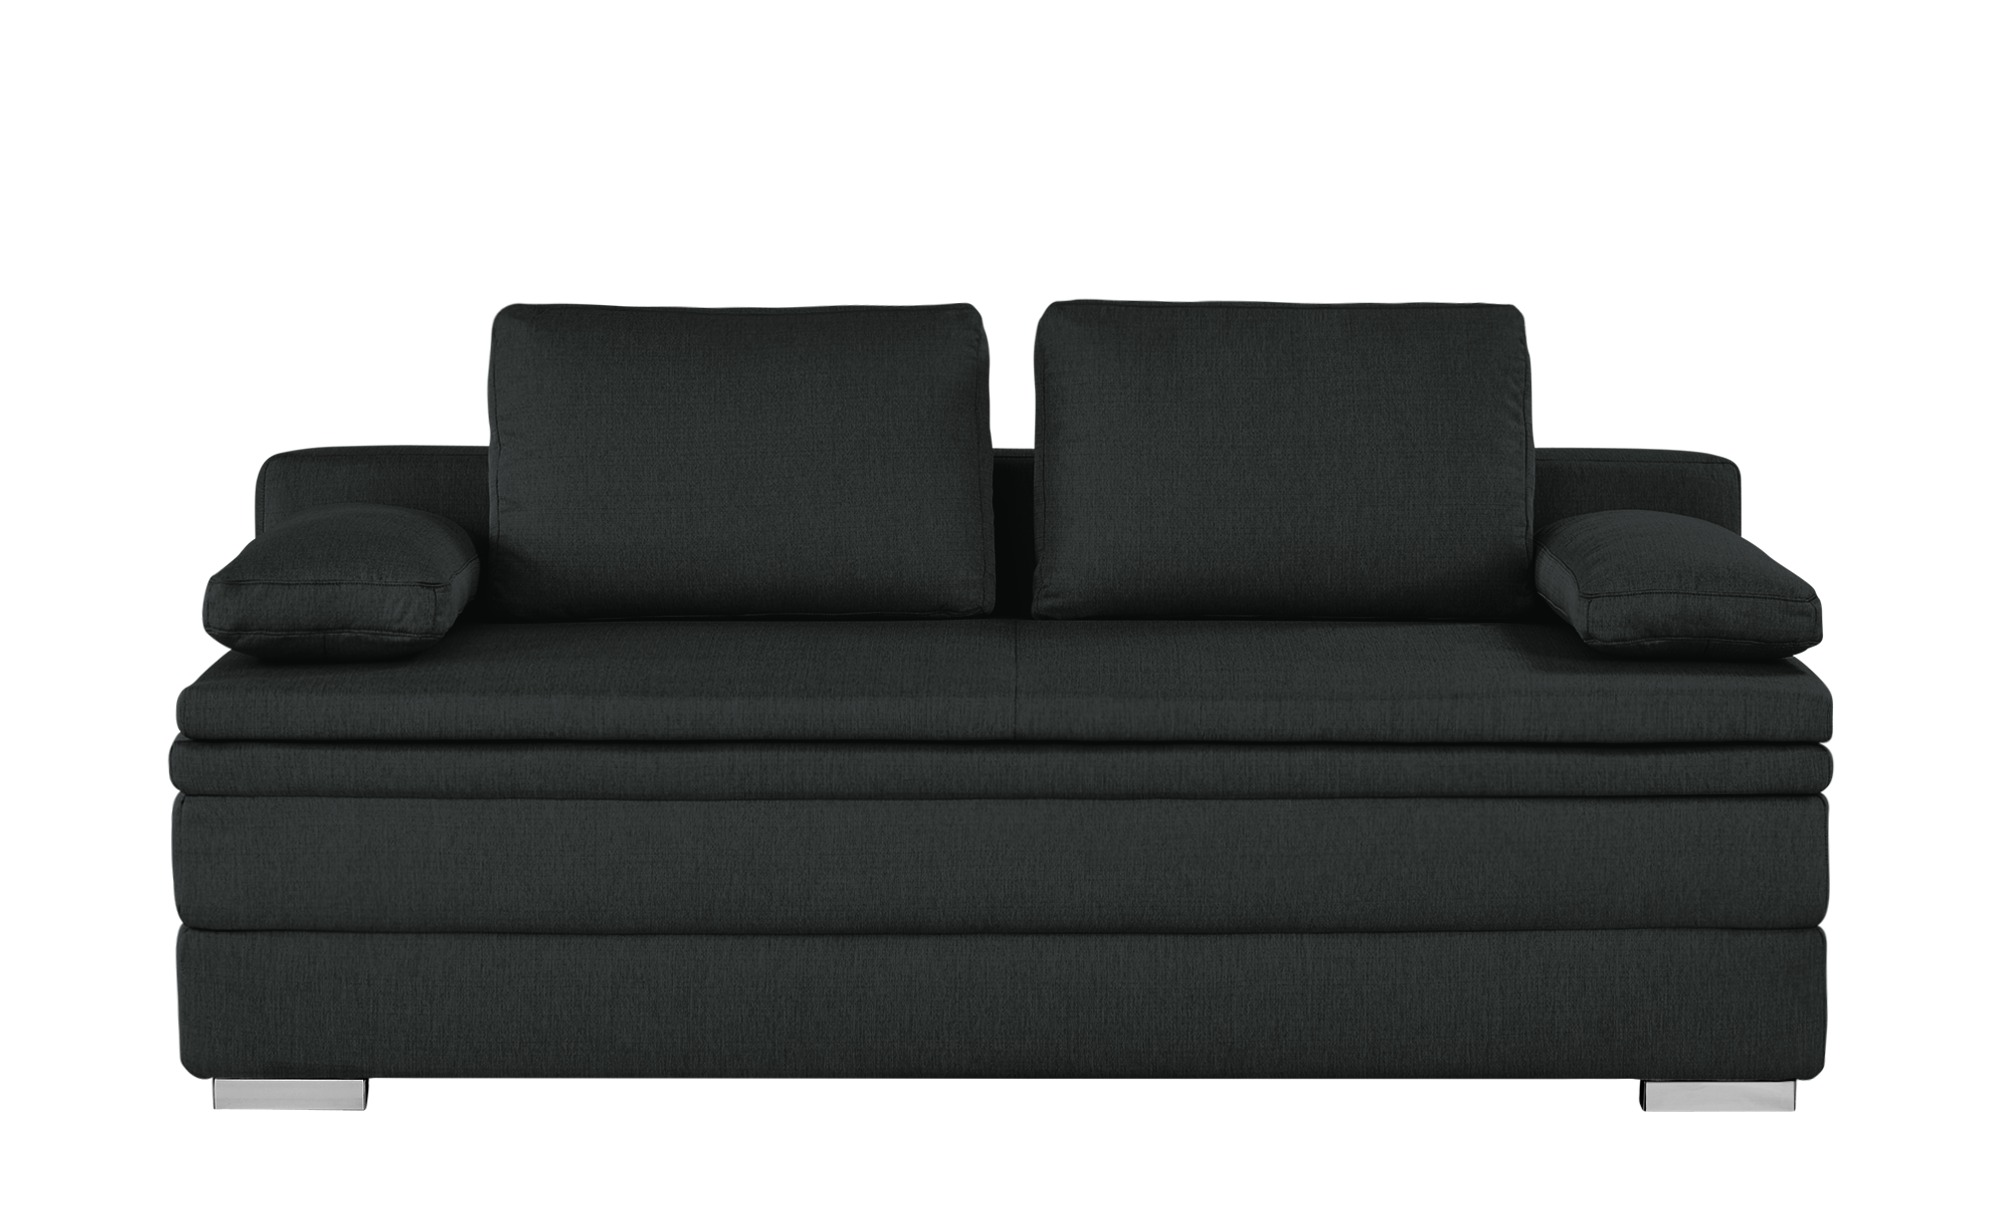 smart boxspring schlafsofa daphne breite 202 cm h he 92 cm schwarz online kaufen bei woonio. Black Bedroom Furniture Sets. Home Design Ideas